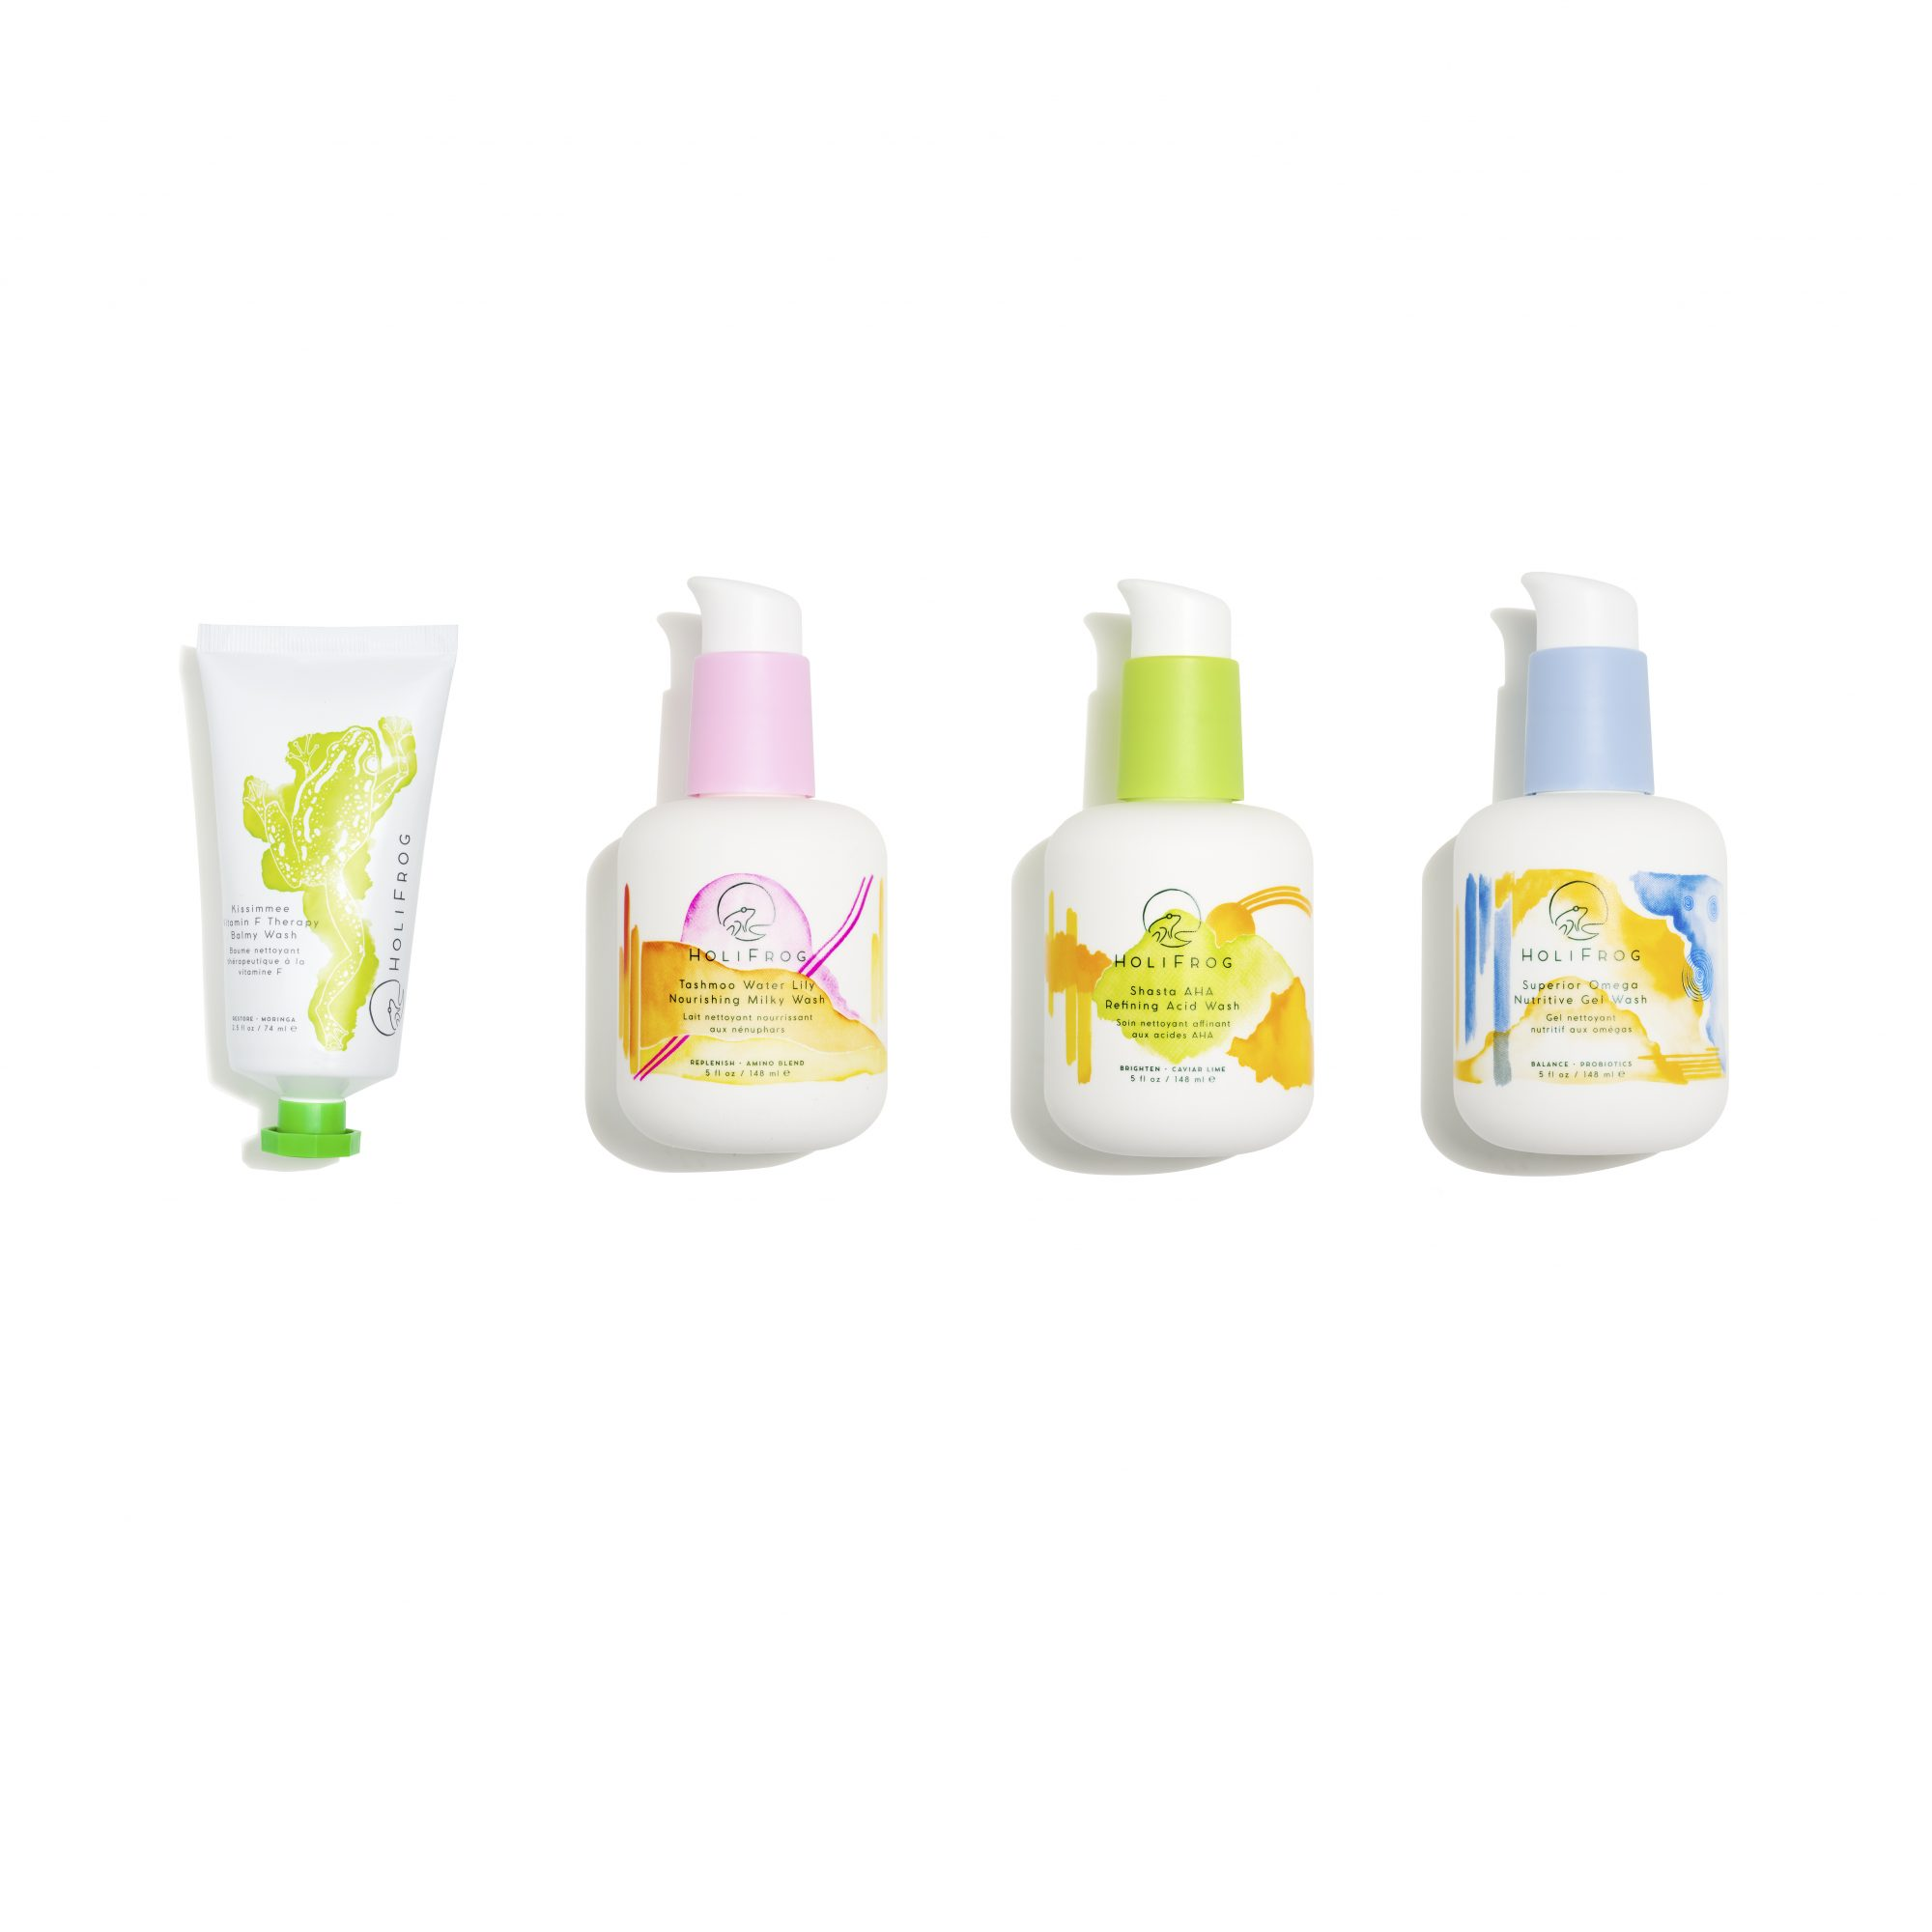 New beauty brand HoliFrog is hoping to refresh the first step in your skin care routine, cleansing, with four holistic and toxin-free face washes: An oil-based balm, purifying gel, soothing milky cream and refining AHA-packed cleanser.                             Buy It! HoliFrog Kissimmee Vitamin F Balmy Wash, Tashmoo Water Lily Nourishing Milky Wash, Shashta AHA Refining Acid Wash and Superior Omega Nutritive Gel Wash, $36 to $42; dermstore.com